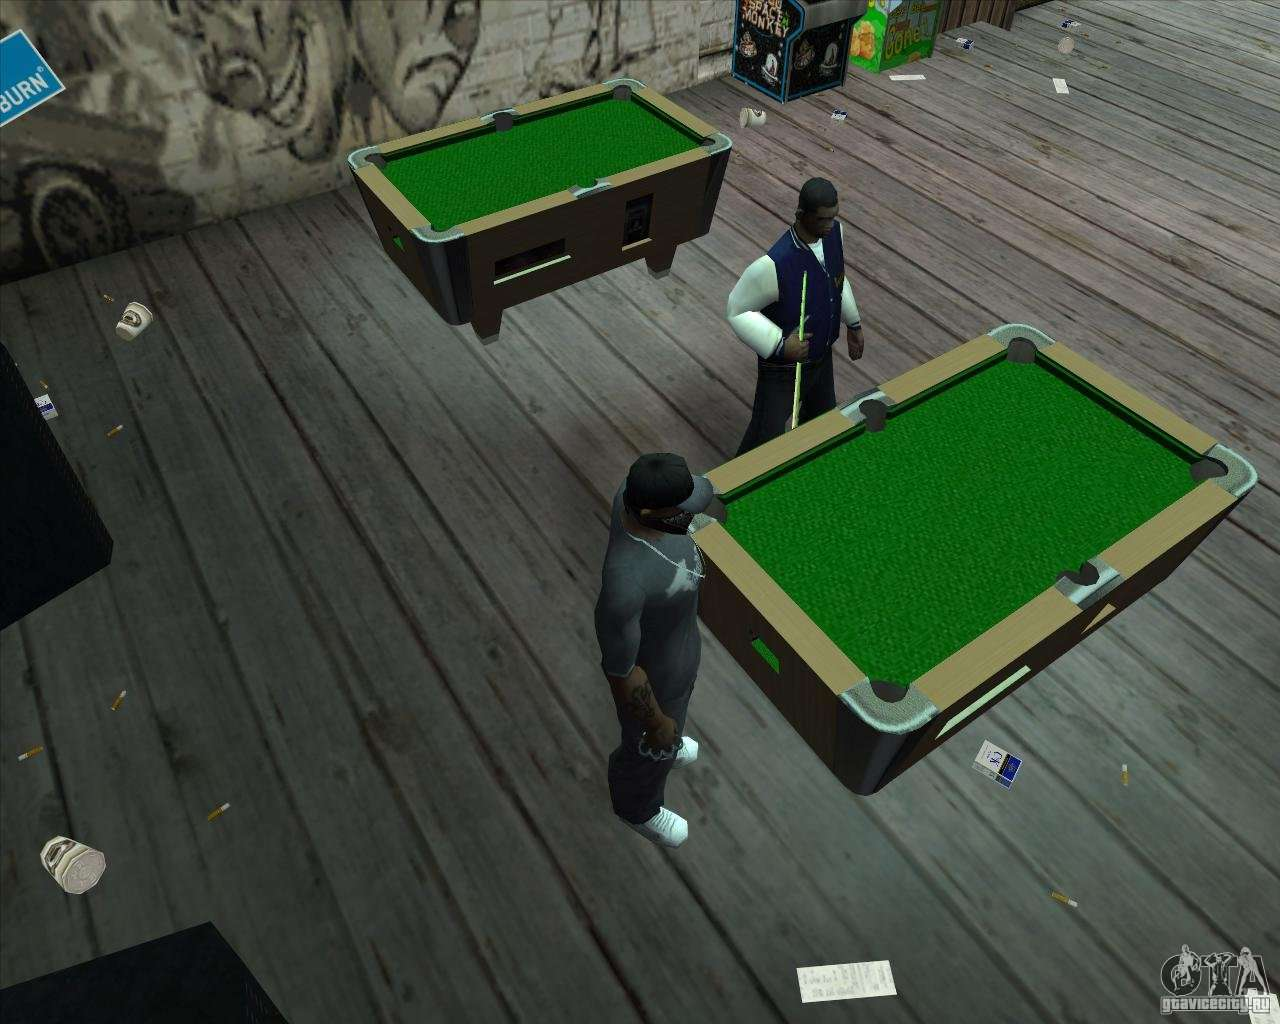 New pool table for gta san andreas for 10 in 1 pool table